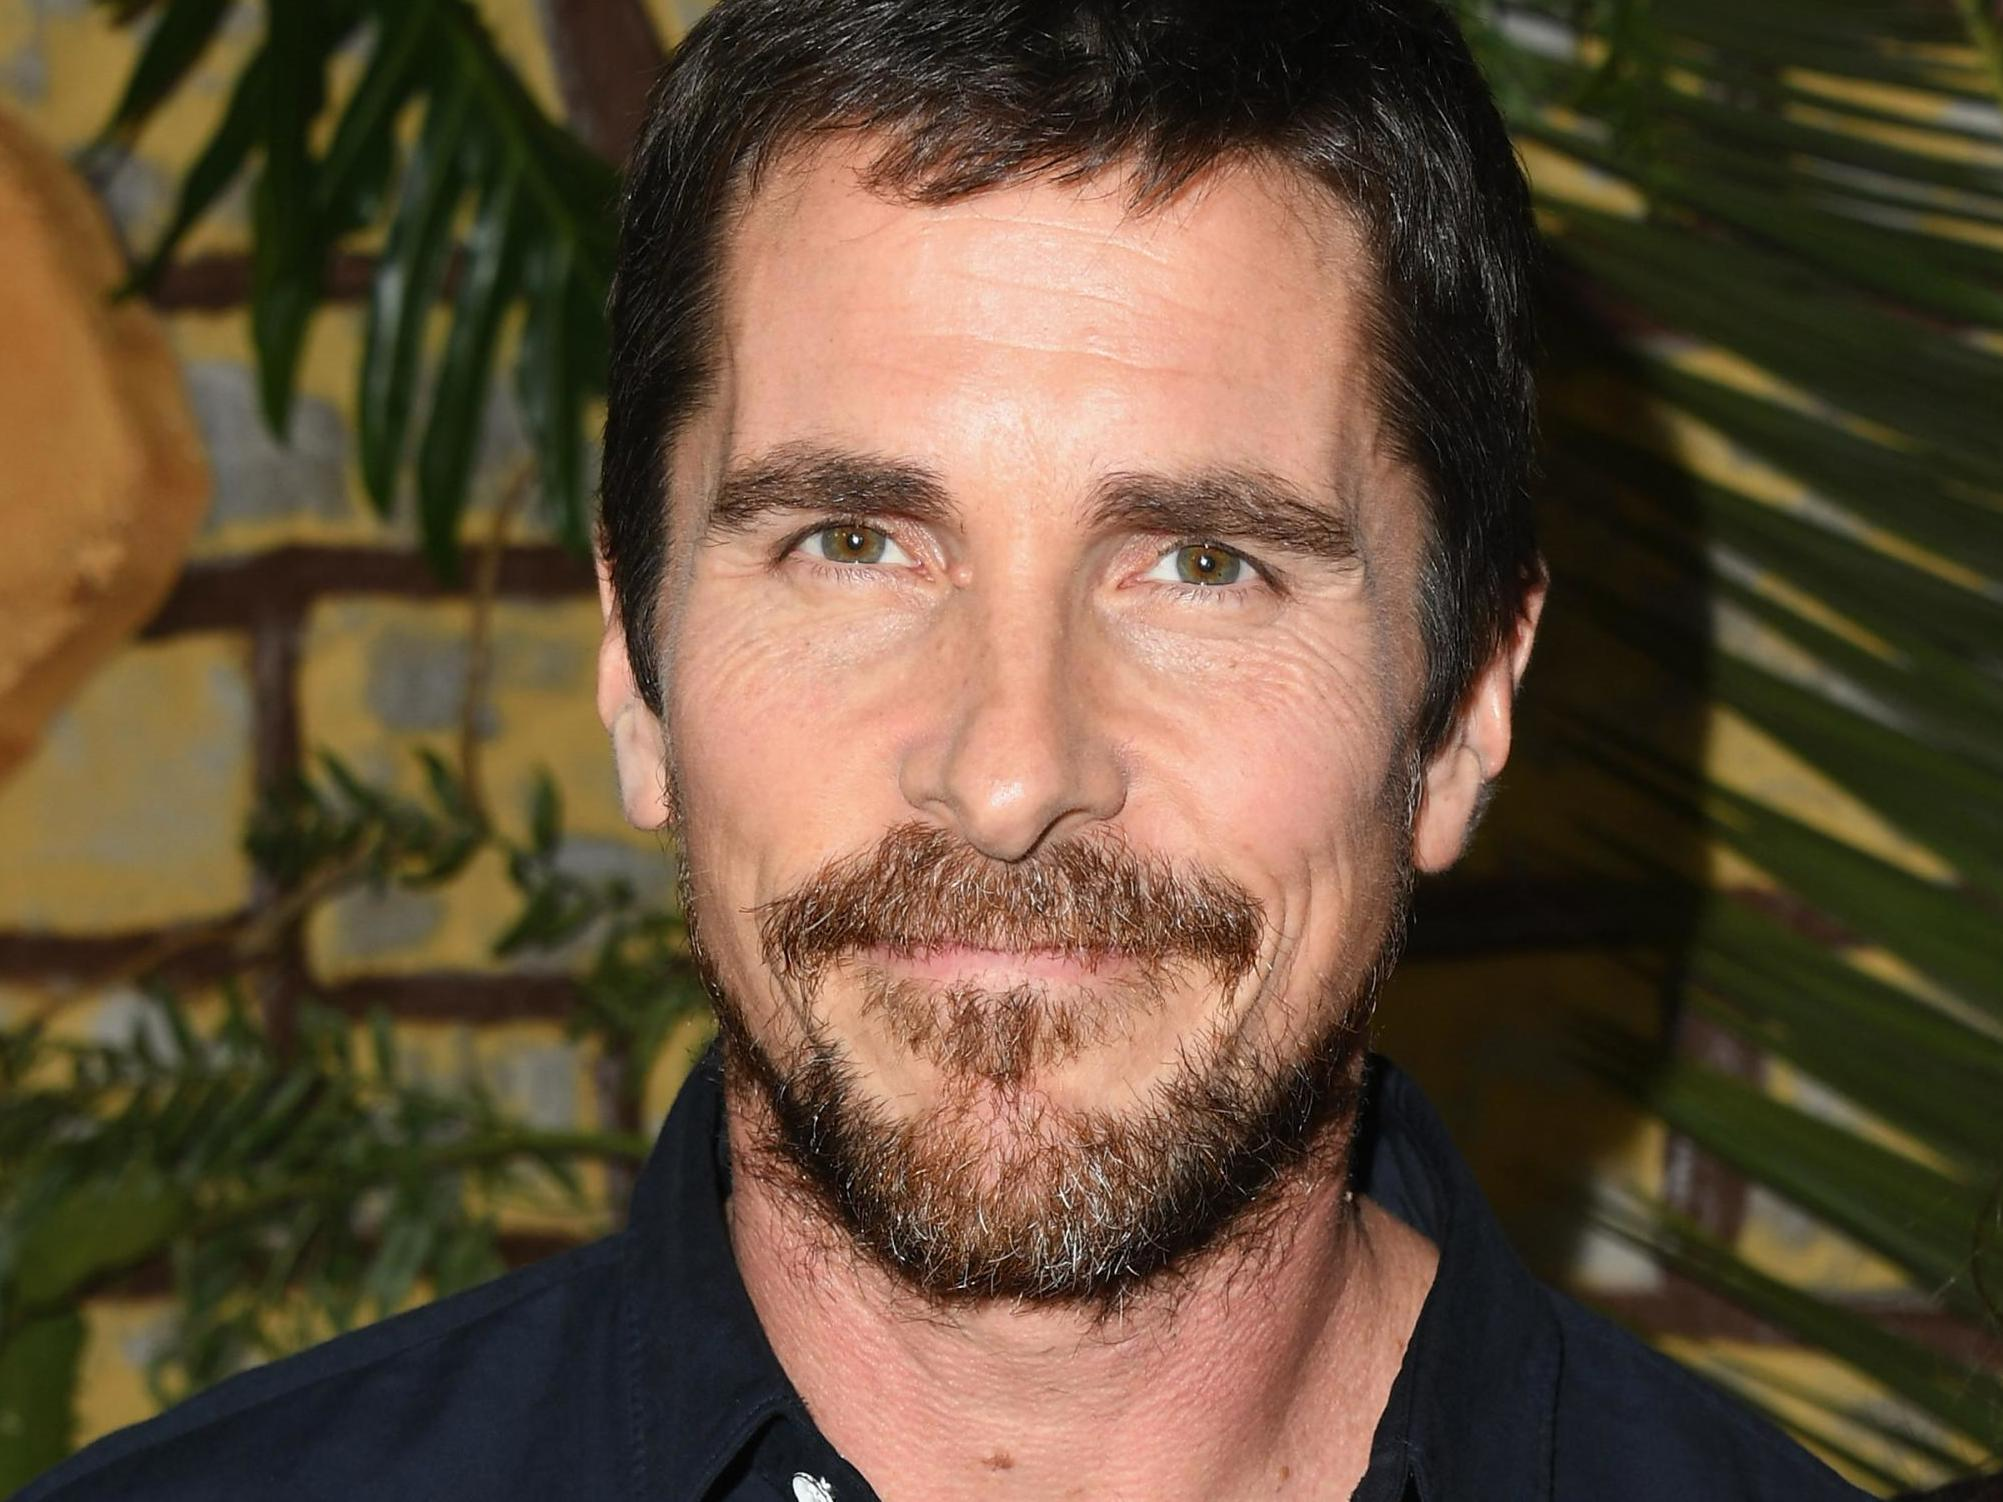 Christian Bale S Accent Confuses British Television Viewers It S Weird Hearing Him Speak In His Real Voice The Independent The Independent